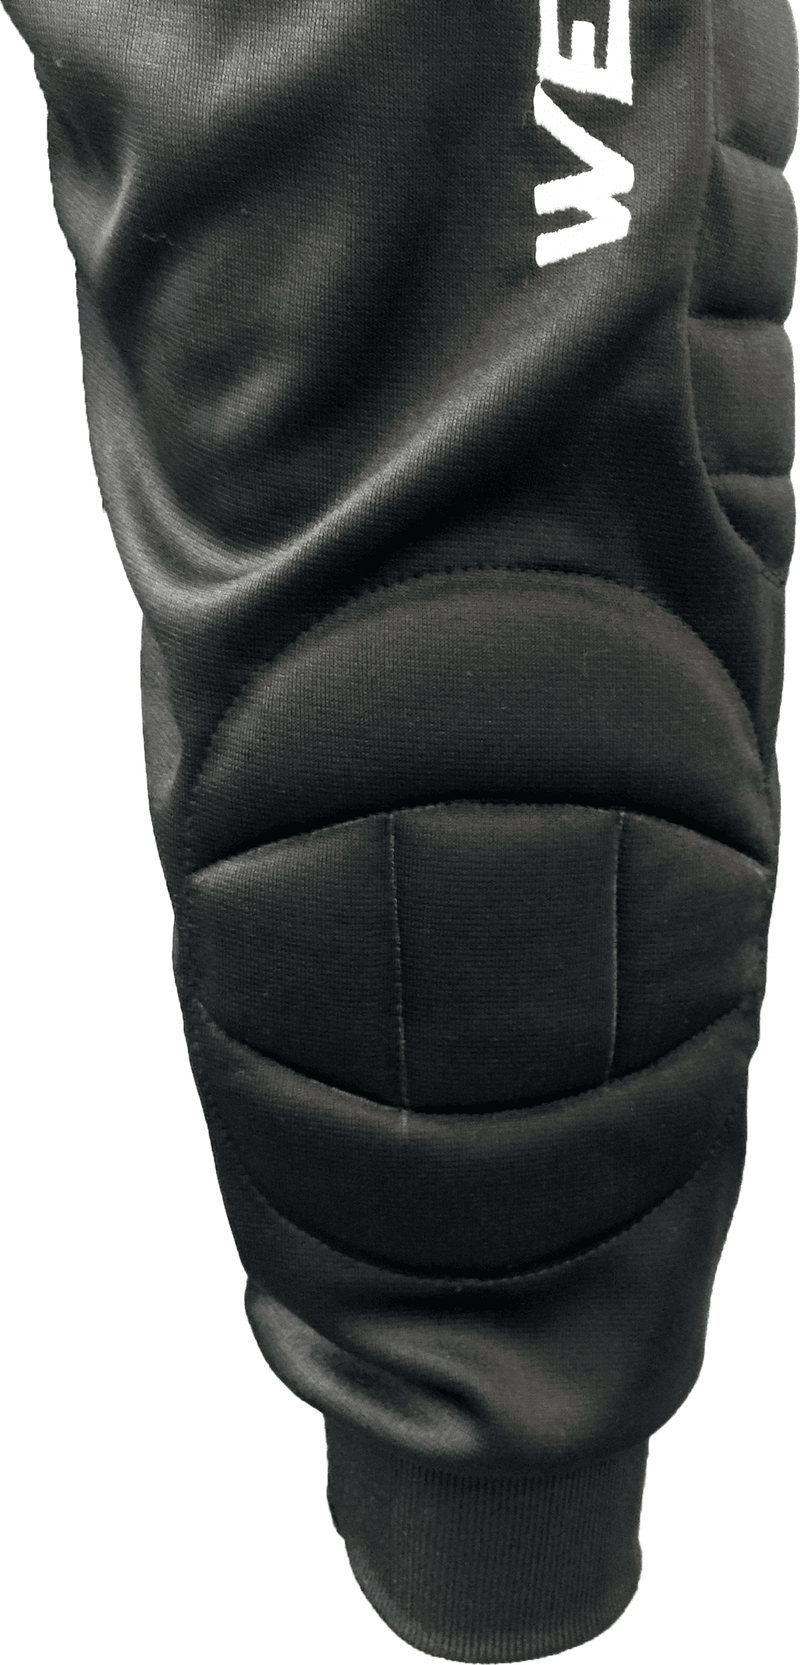 3/4 Padded Keeper Pants - Fingersave Goalkeeper Gloves West Coast Goalkeeping